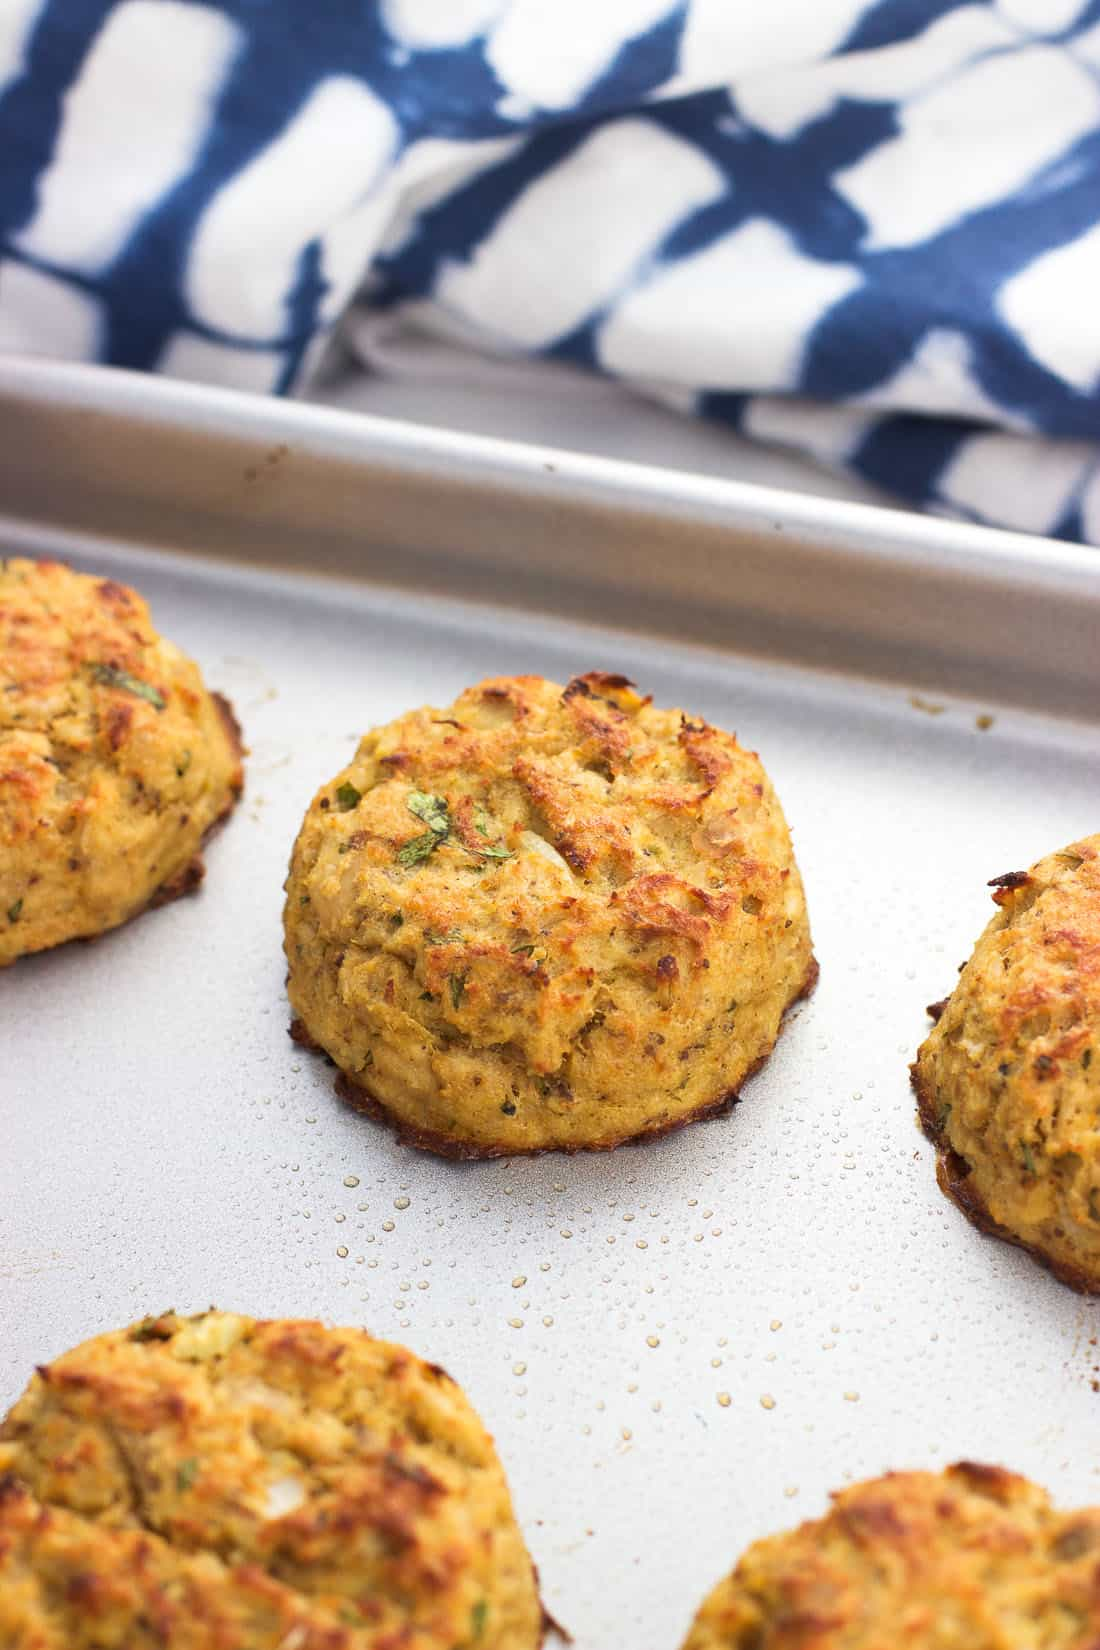 A baked and broiled tuna cake on a baking sheet